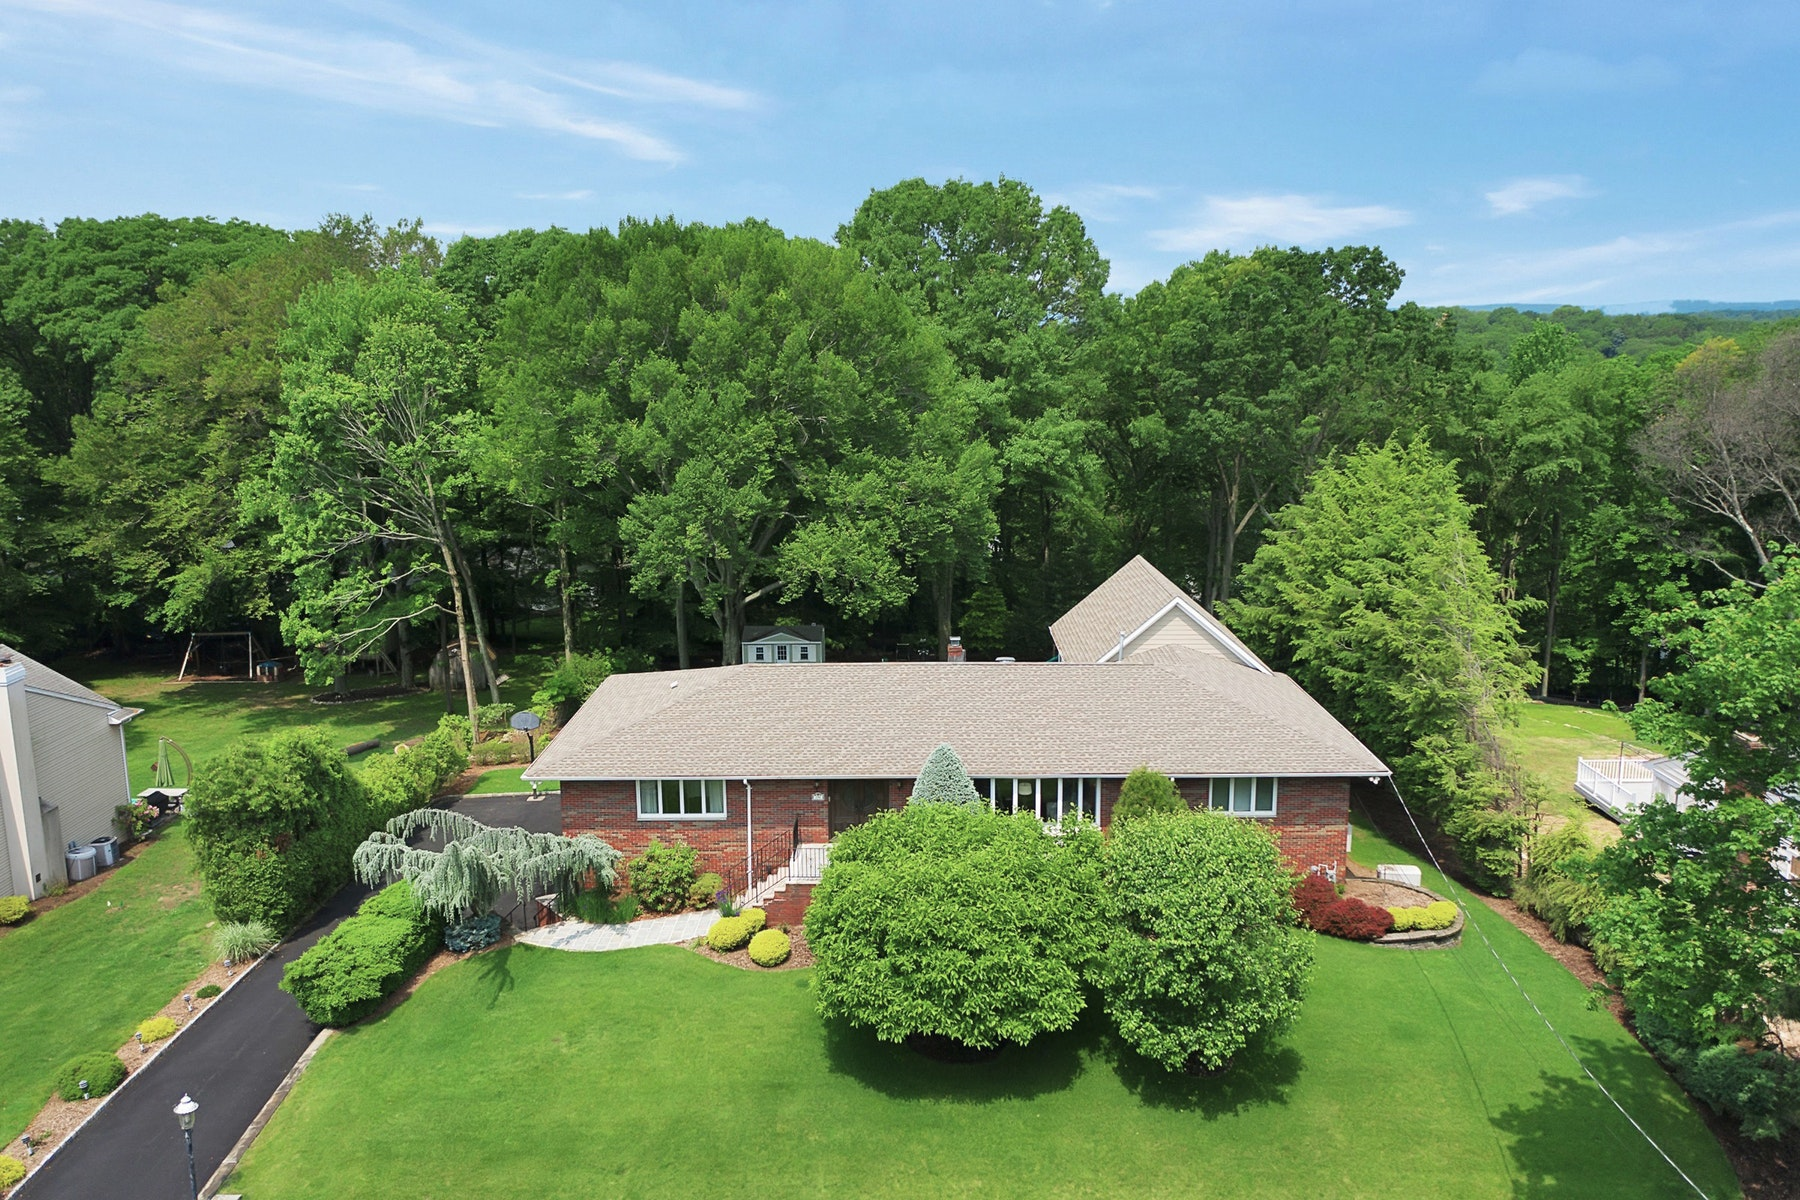 Single Family Homes for Sale at House Beautiful 296 Briarwood Drive Wyckoff, New Jersey 07481 United States